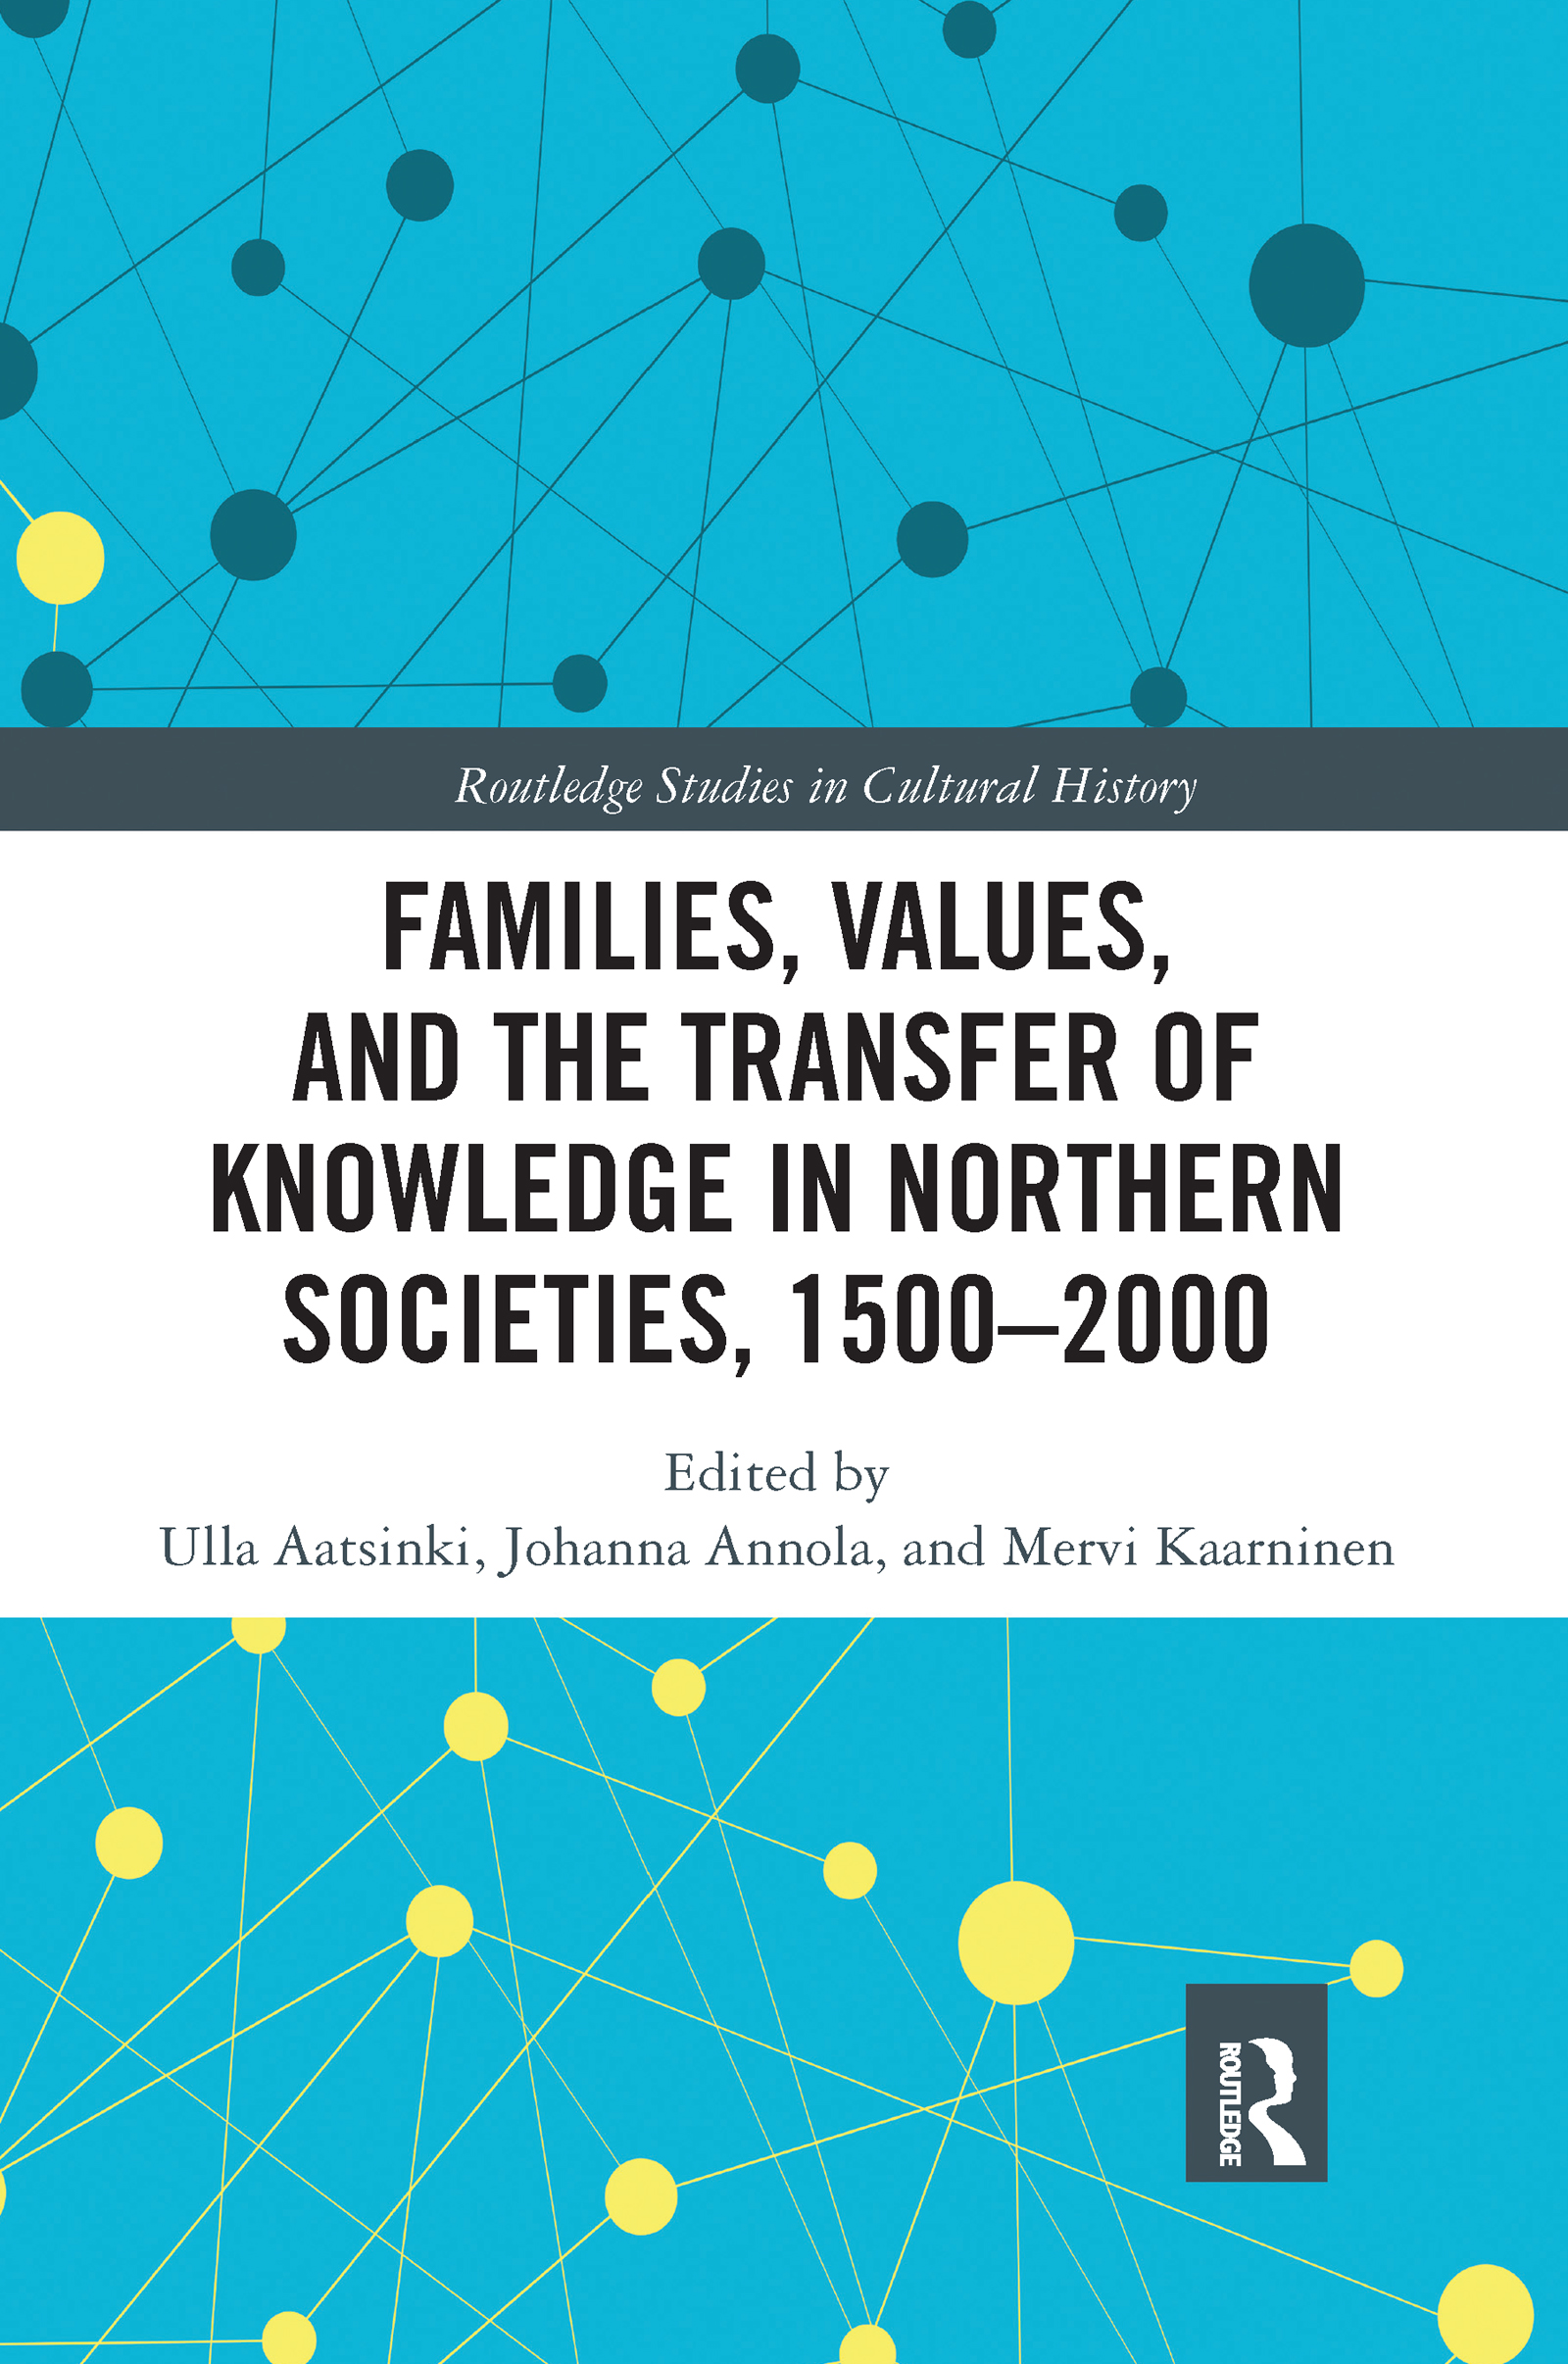 Families, Values, and the Transfer of Knowledge in Northern Societies, 1500–2000